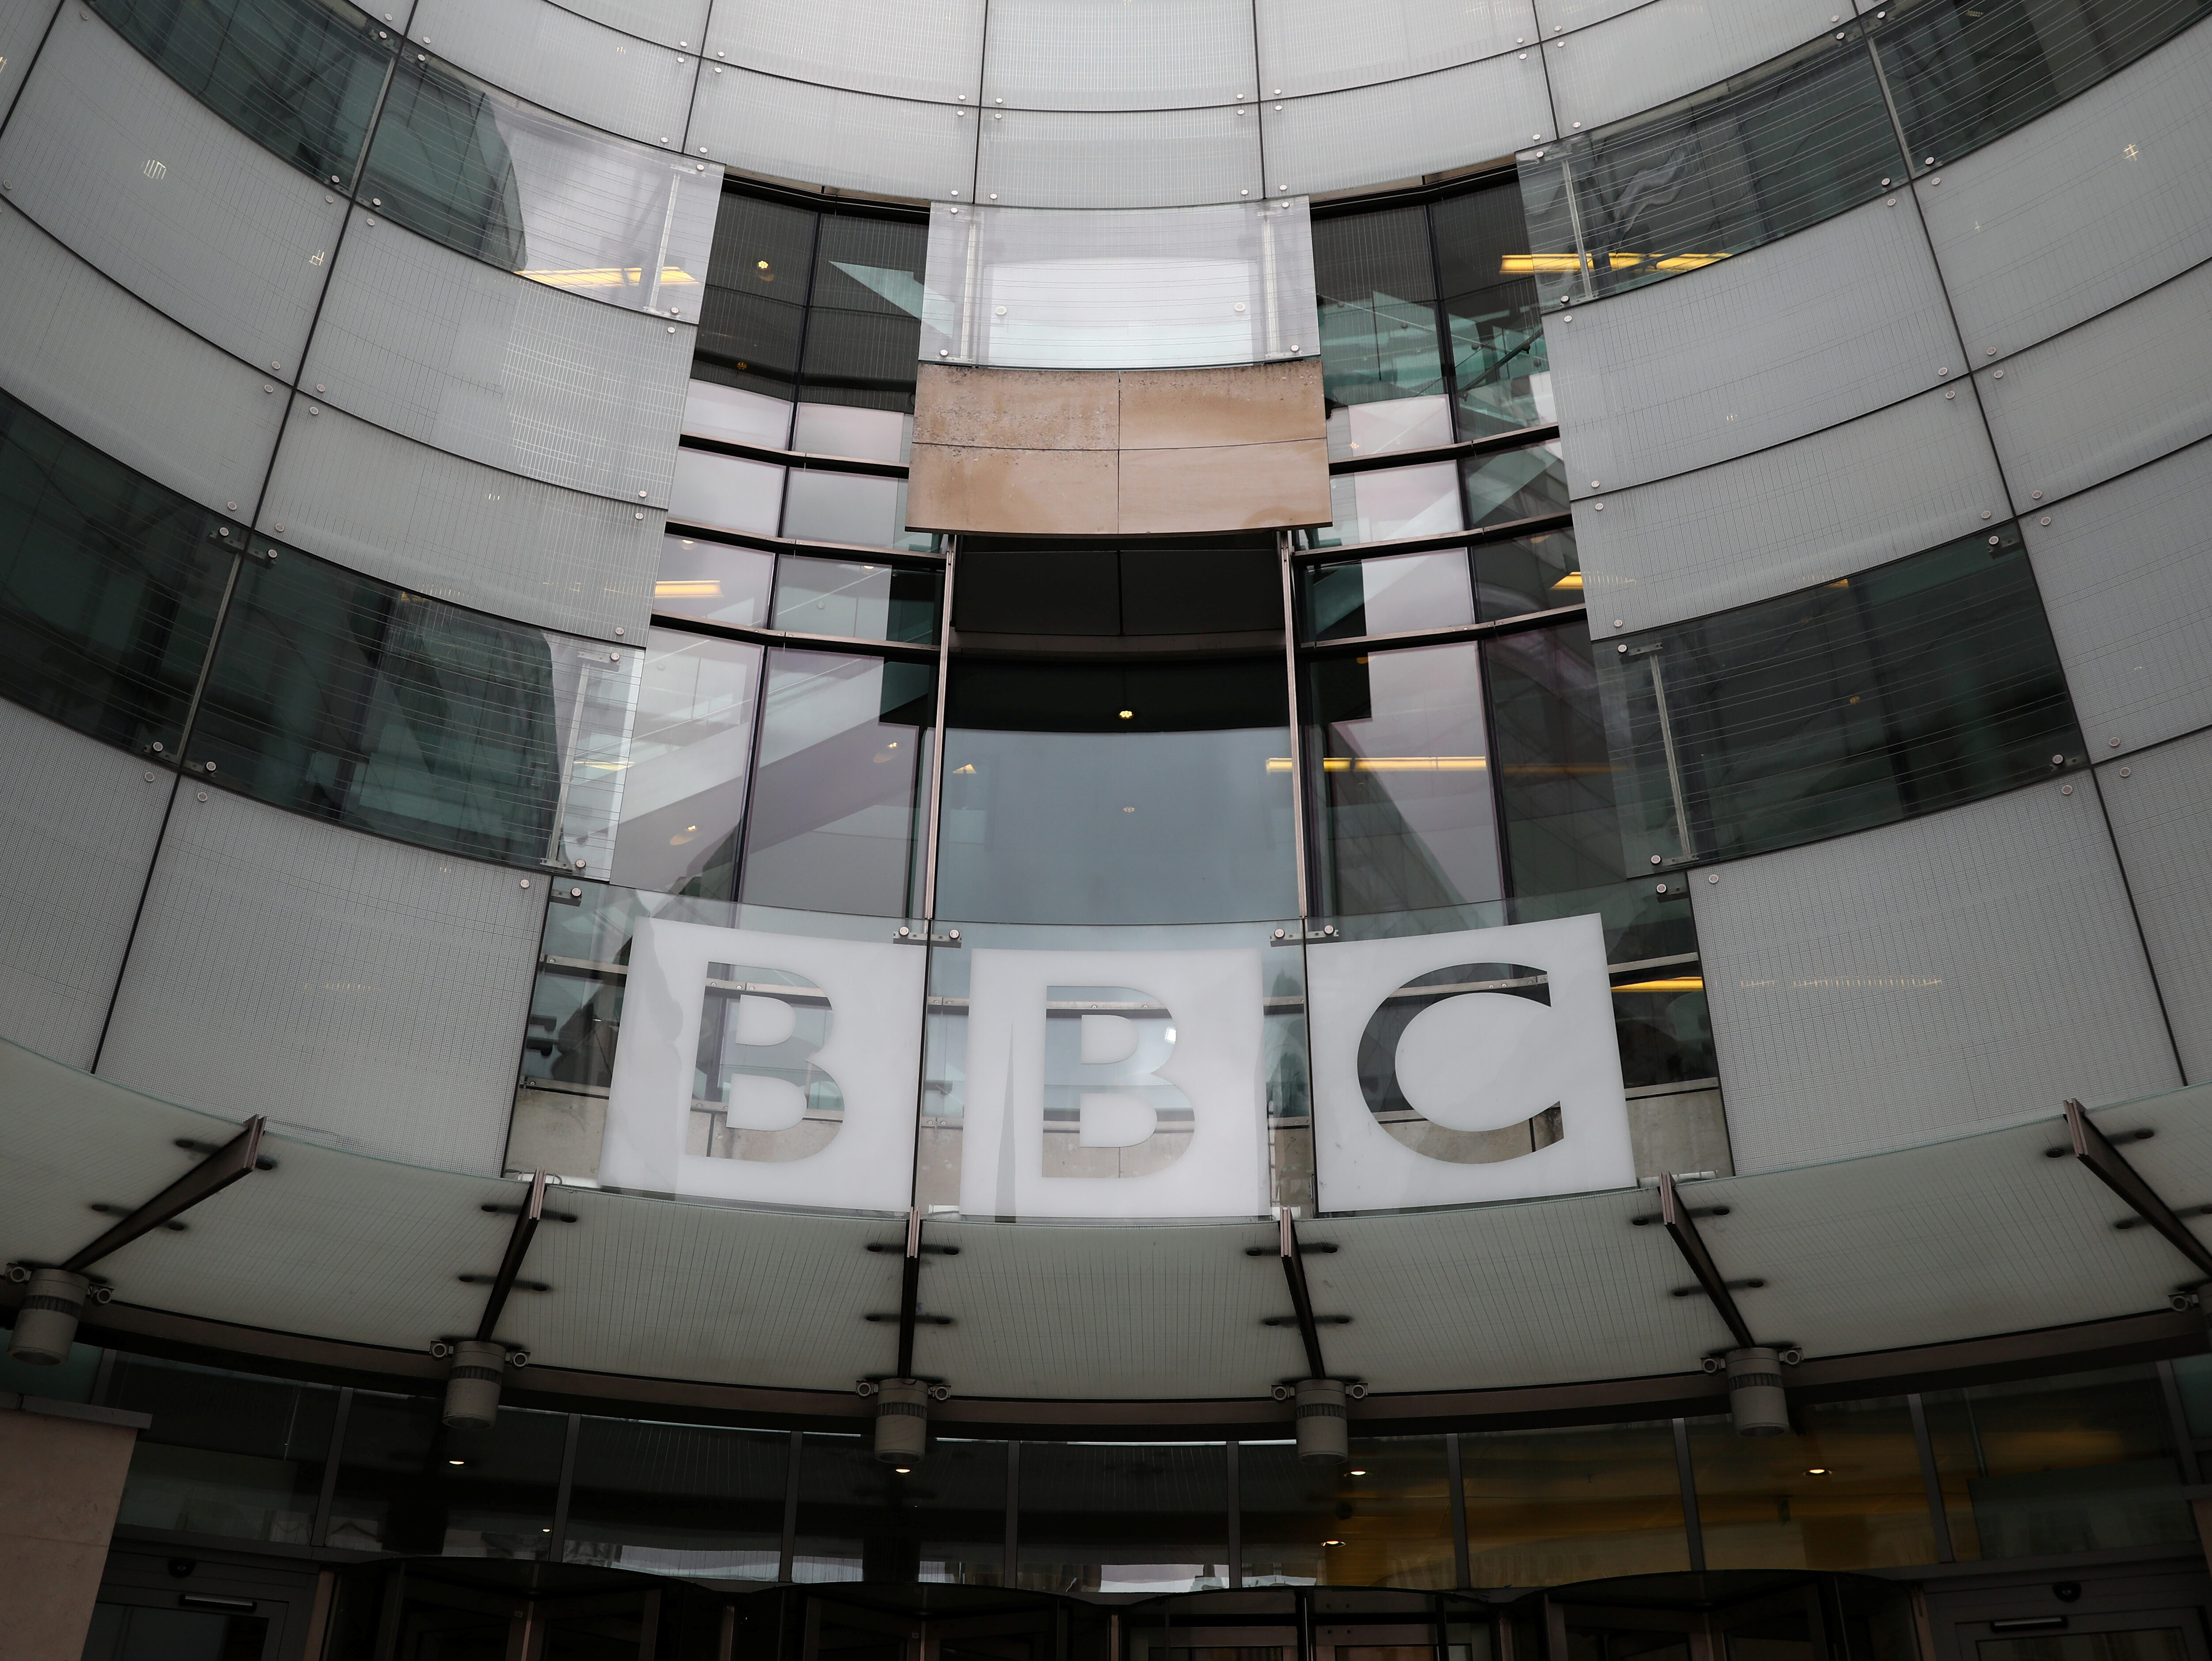 BBC could face prosecution after breaching anonymity order to name two teens charged with murder